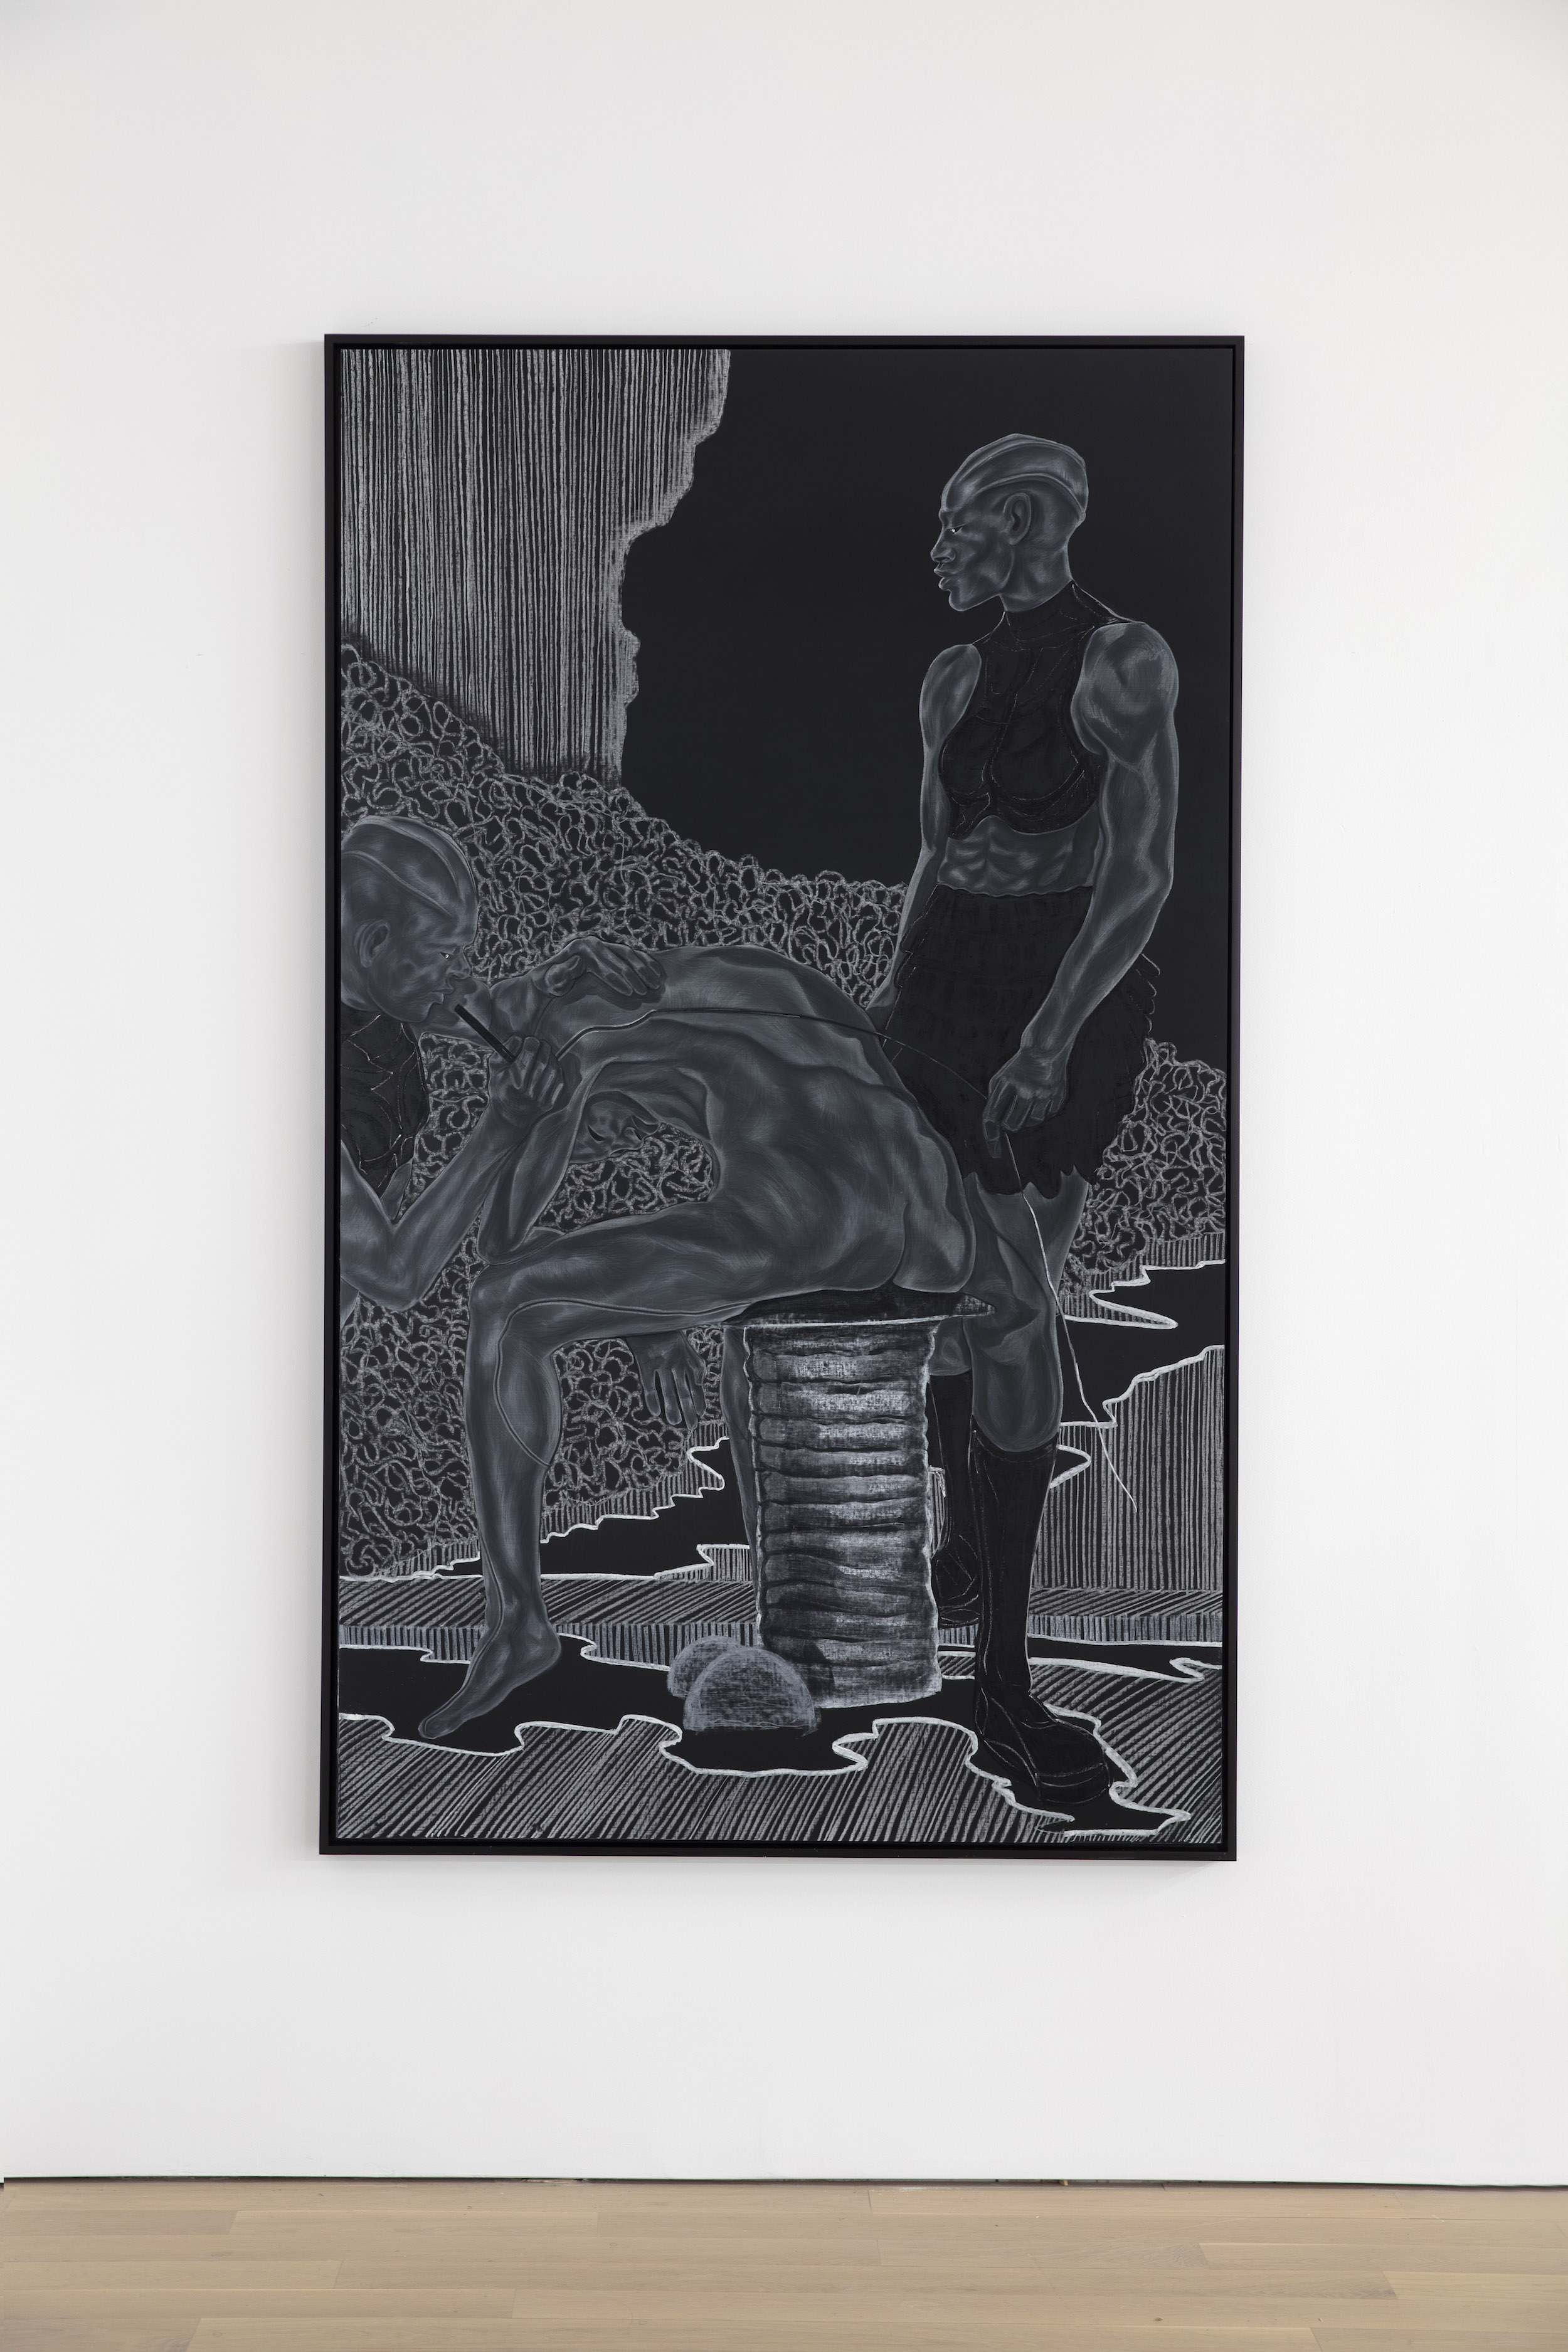 Toyin Ojih Odutola's A Countervailing Theory series